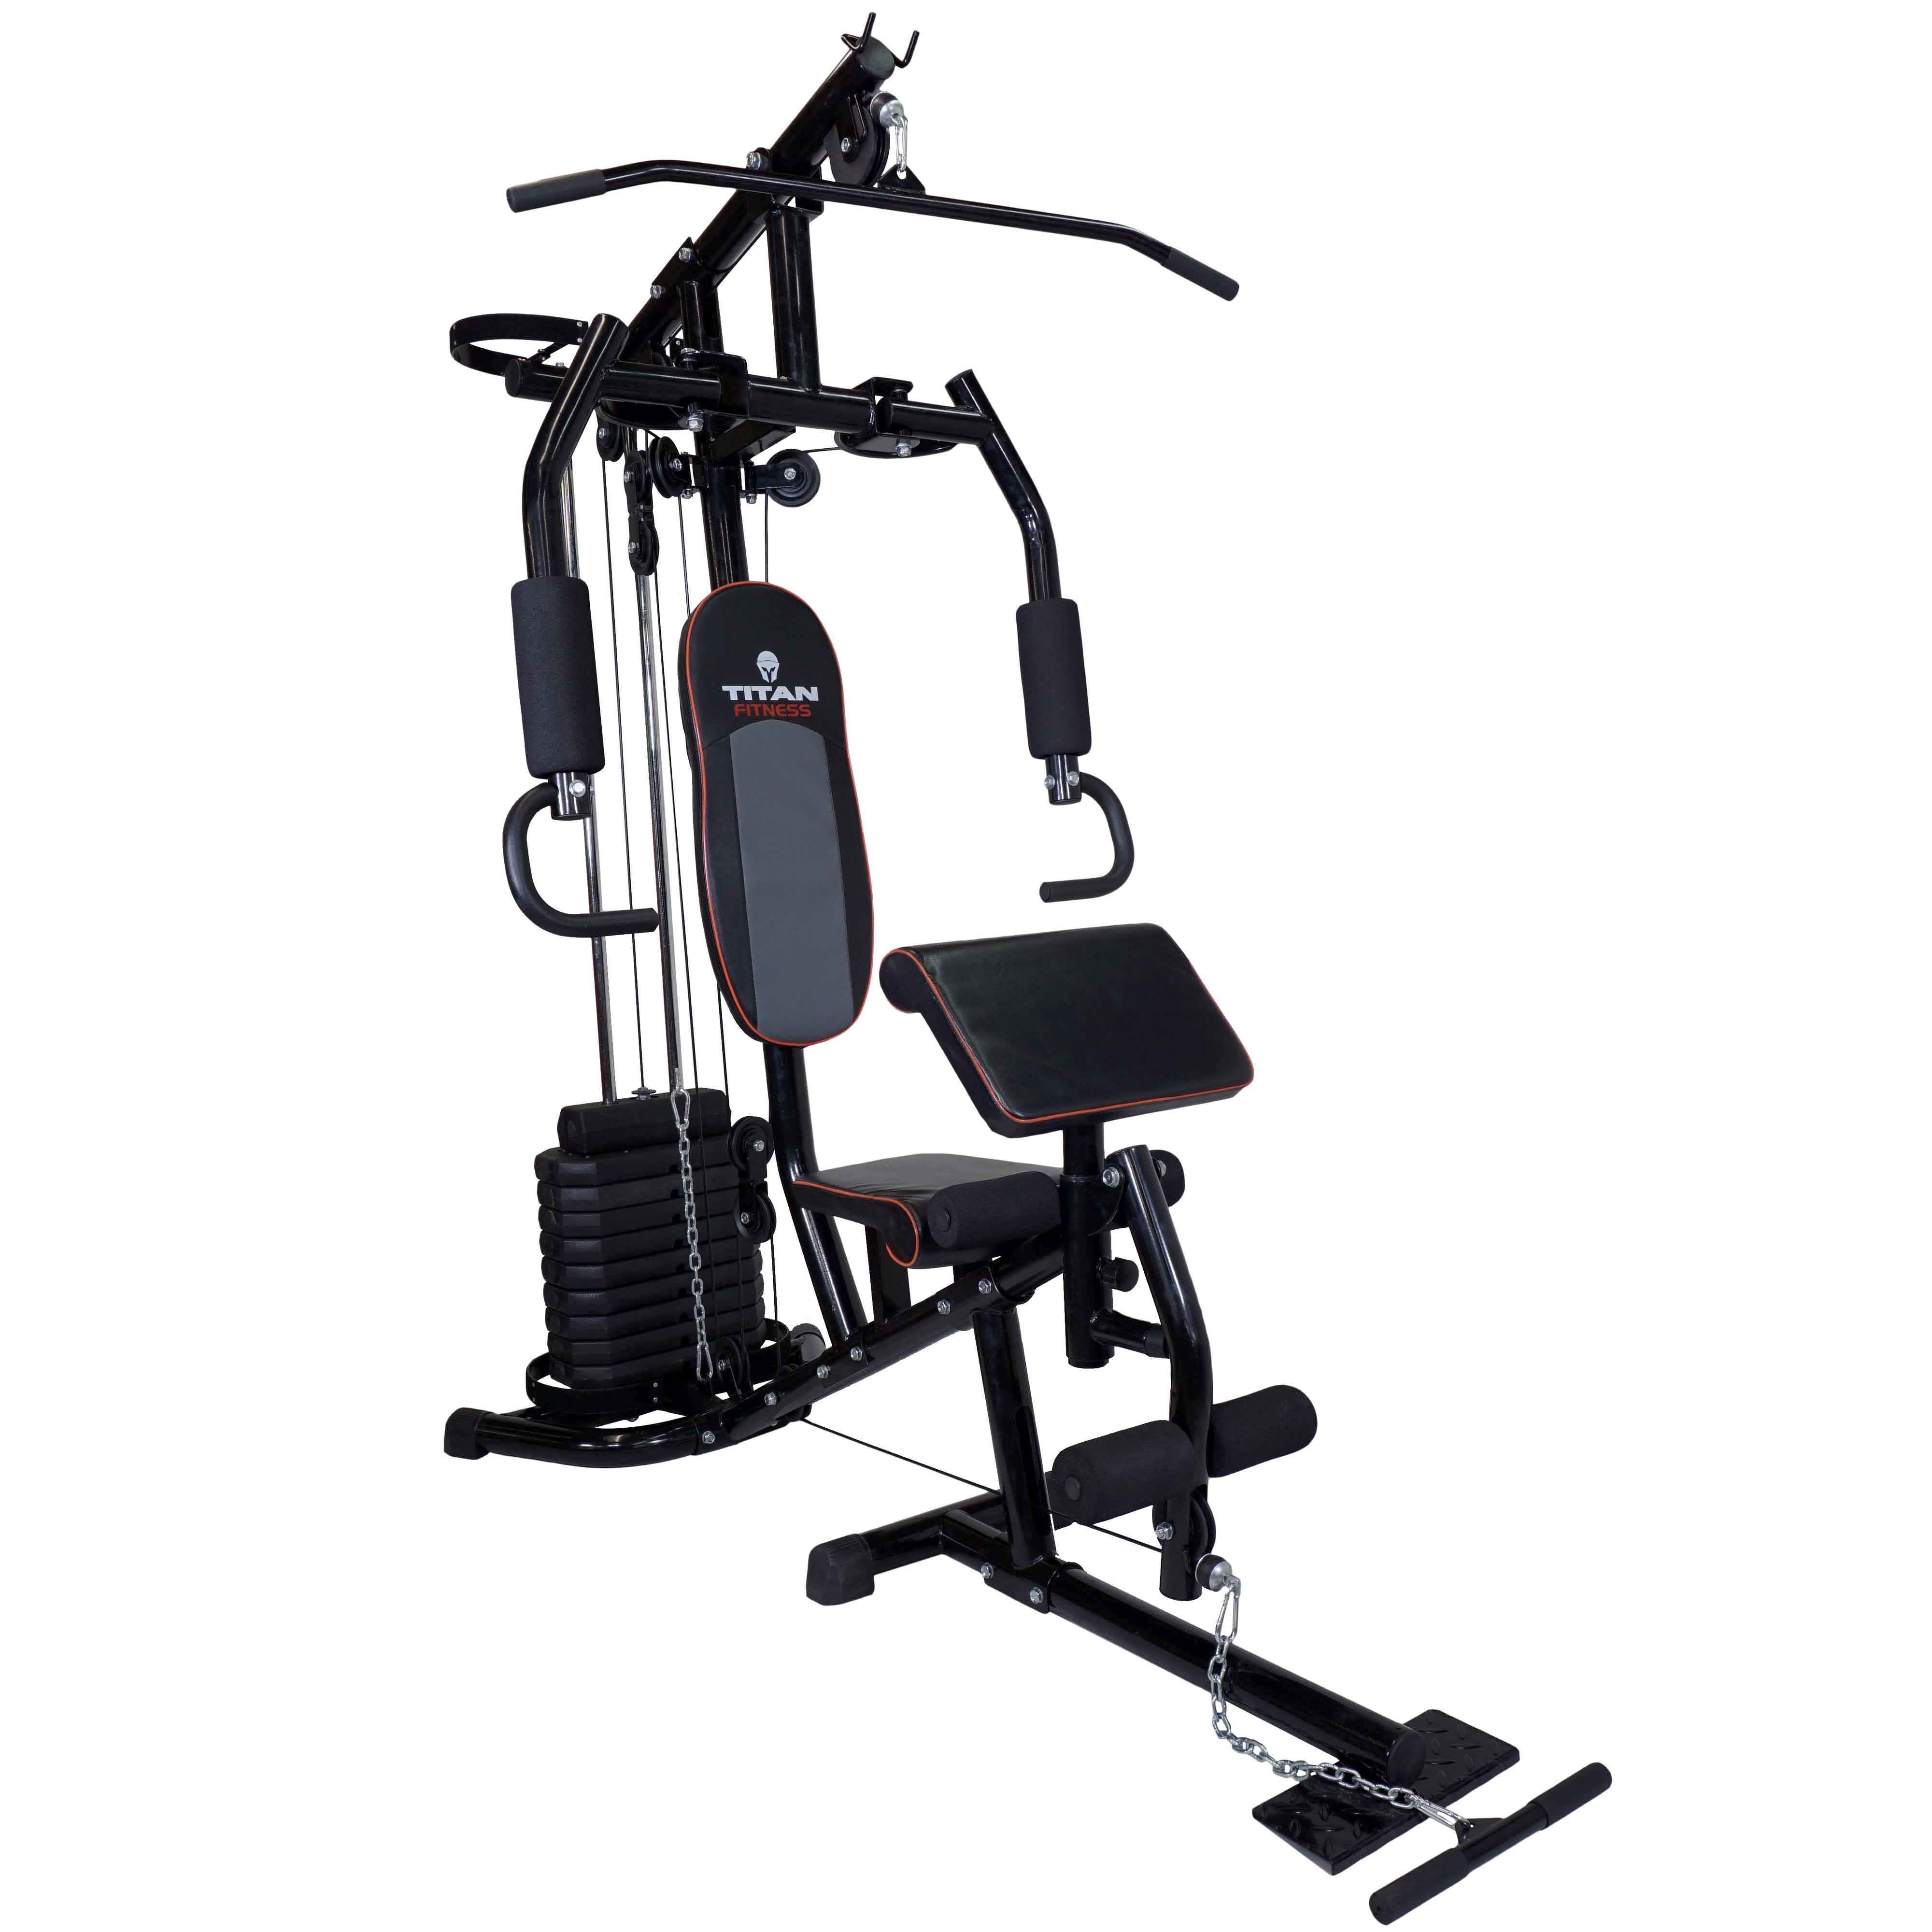 Titan 150 lb Stack Home Gym Total Fitness Strength Equipm...